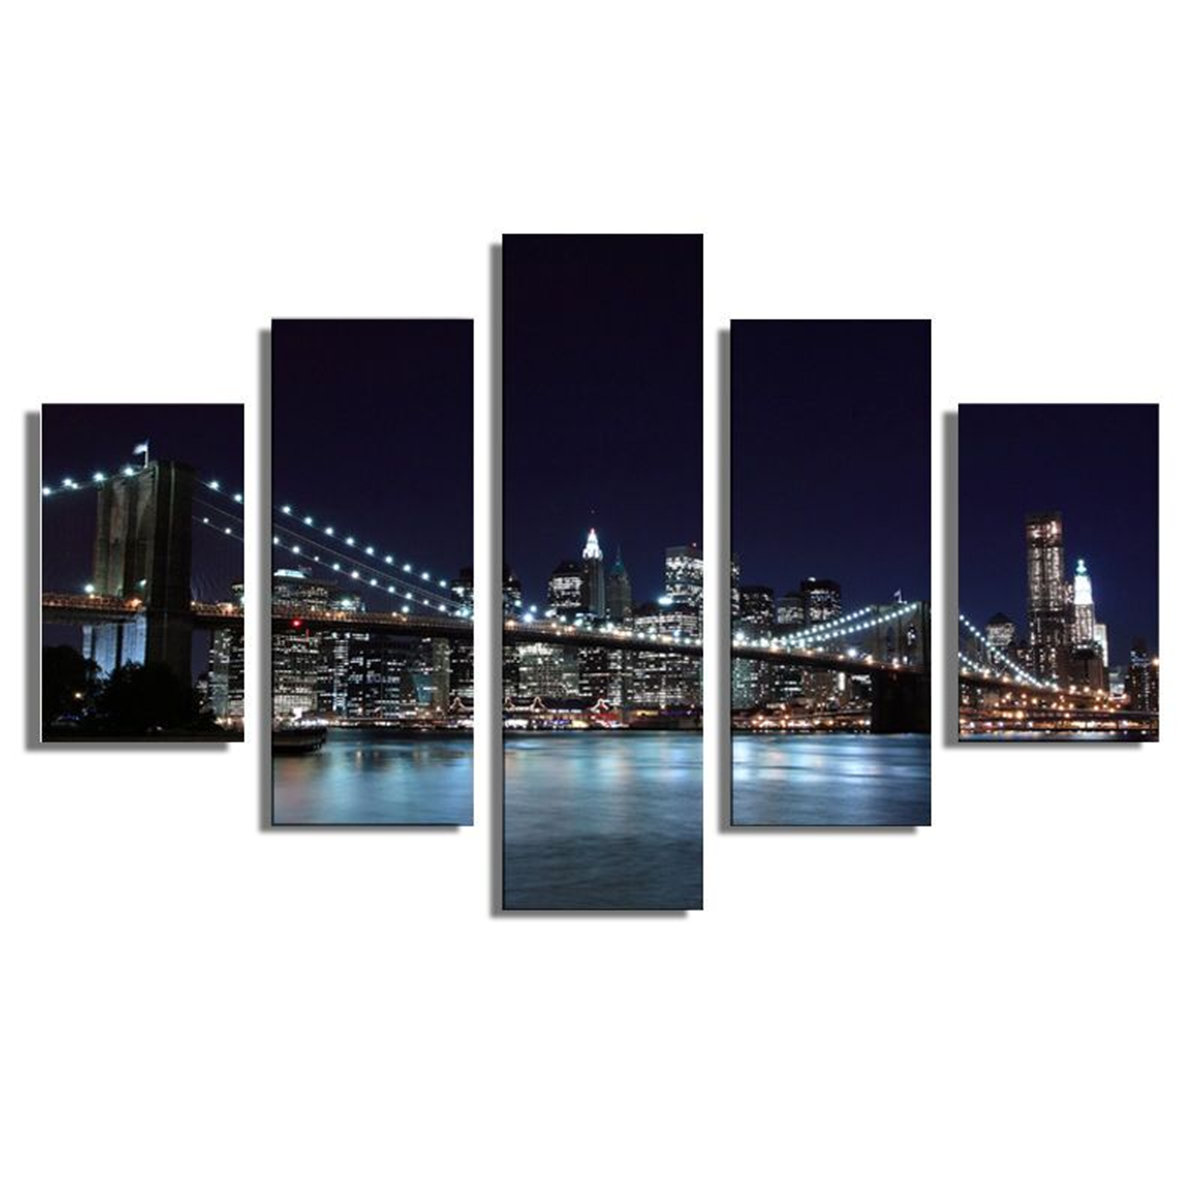 5Pcs Landscape New York City Painting Picture Canvas Print Home Decor Wall Art